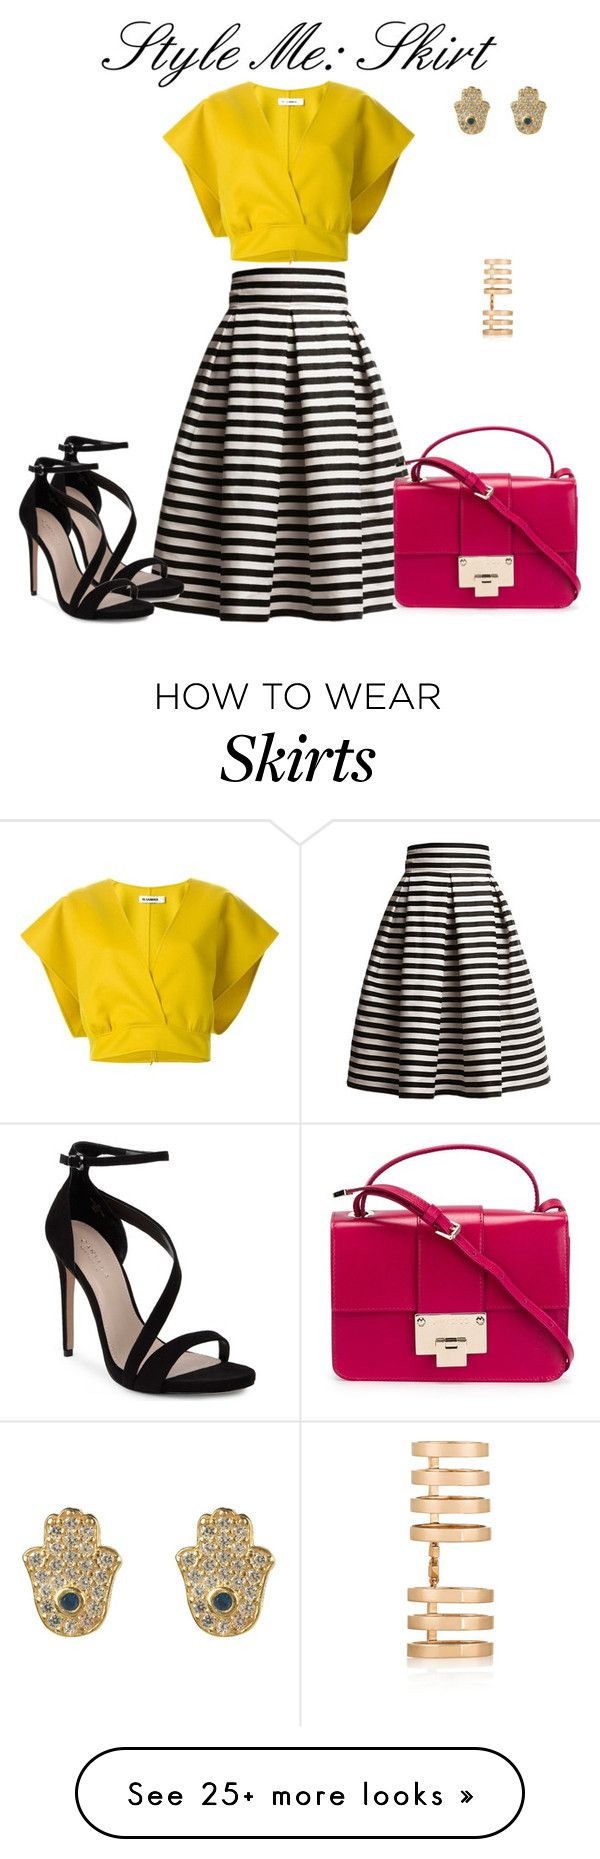 """Style me: Skirt"" by dazzlious on Polyvore featuring Rumour London, Jil Sander, Jimmy Choo, Carvela and Repossi"